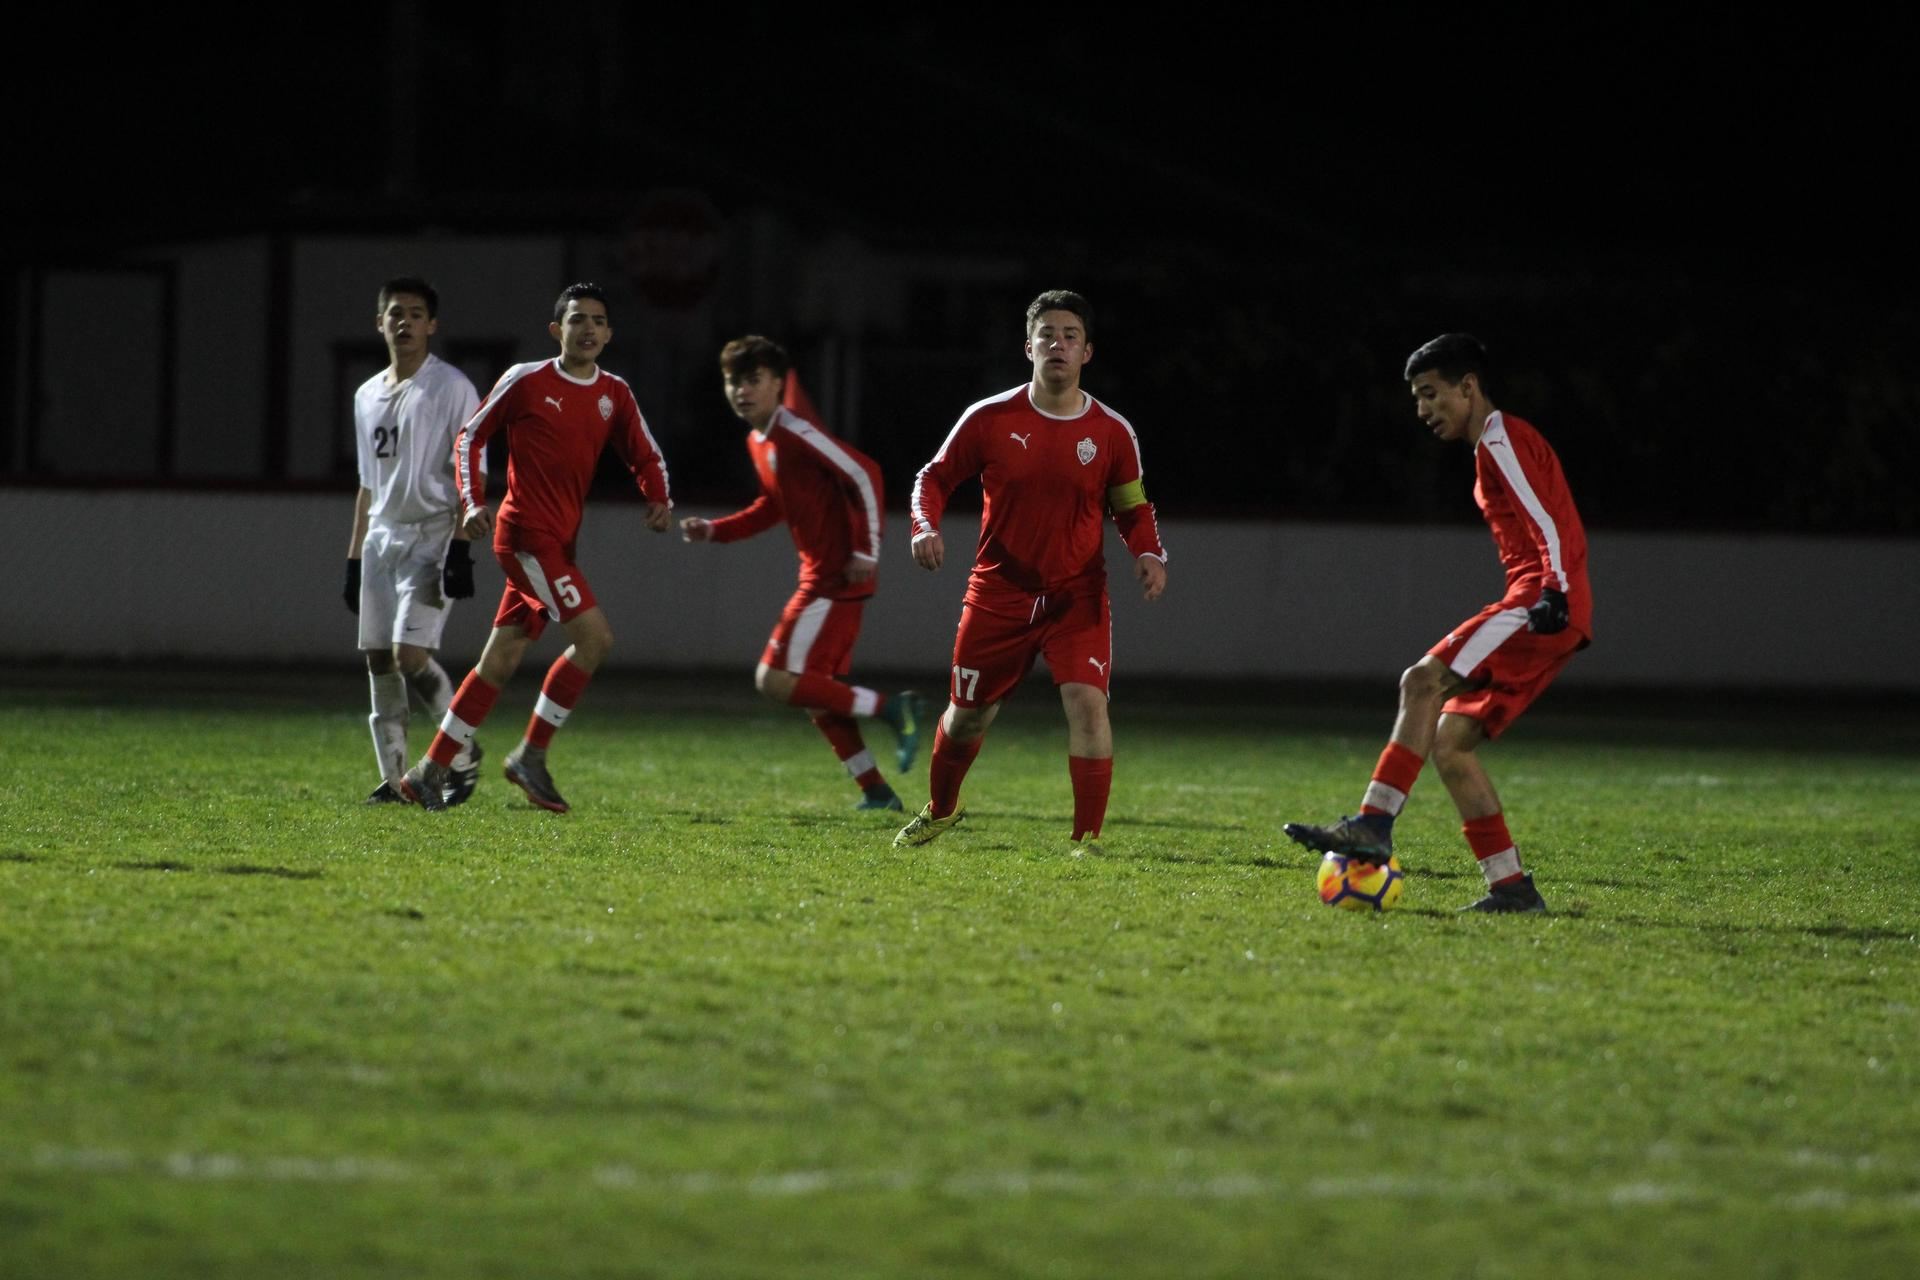 Varsity Boys playing soccer against Sierra